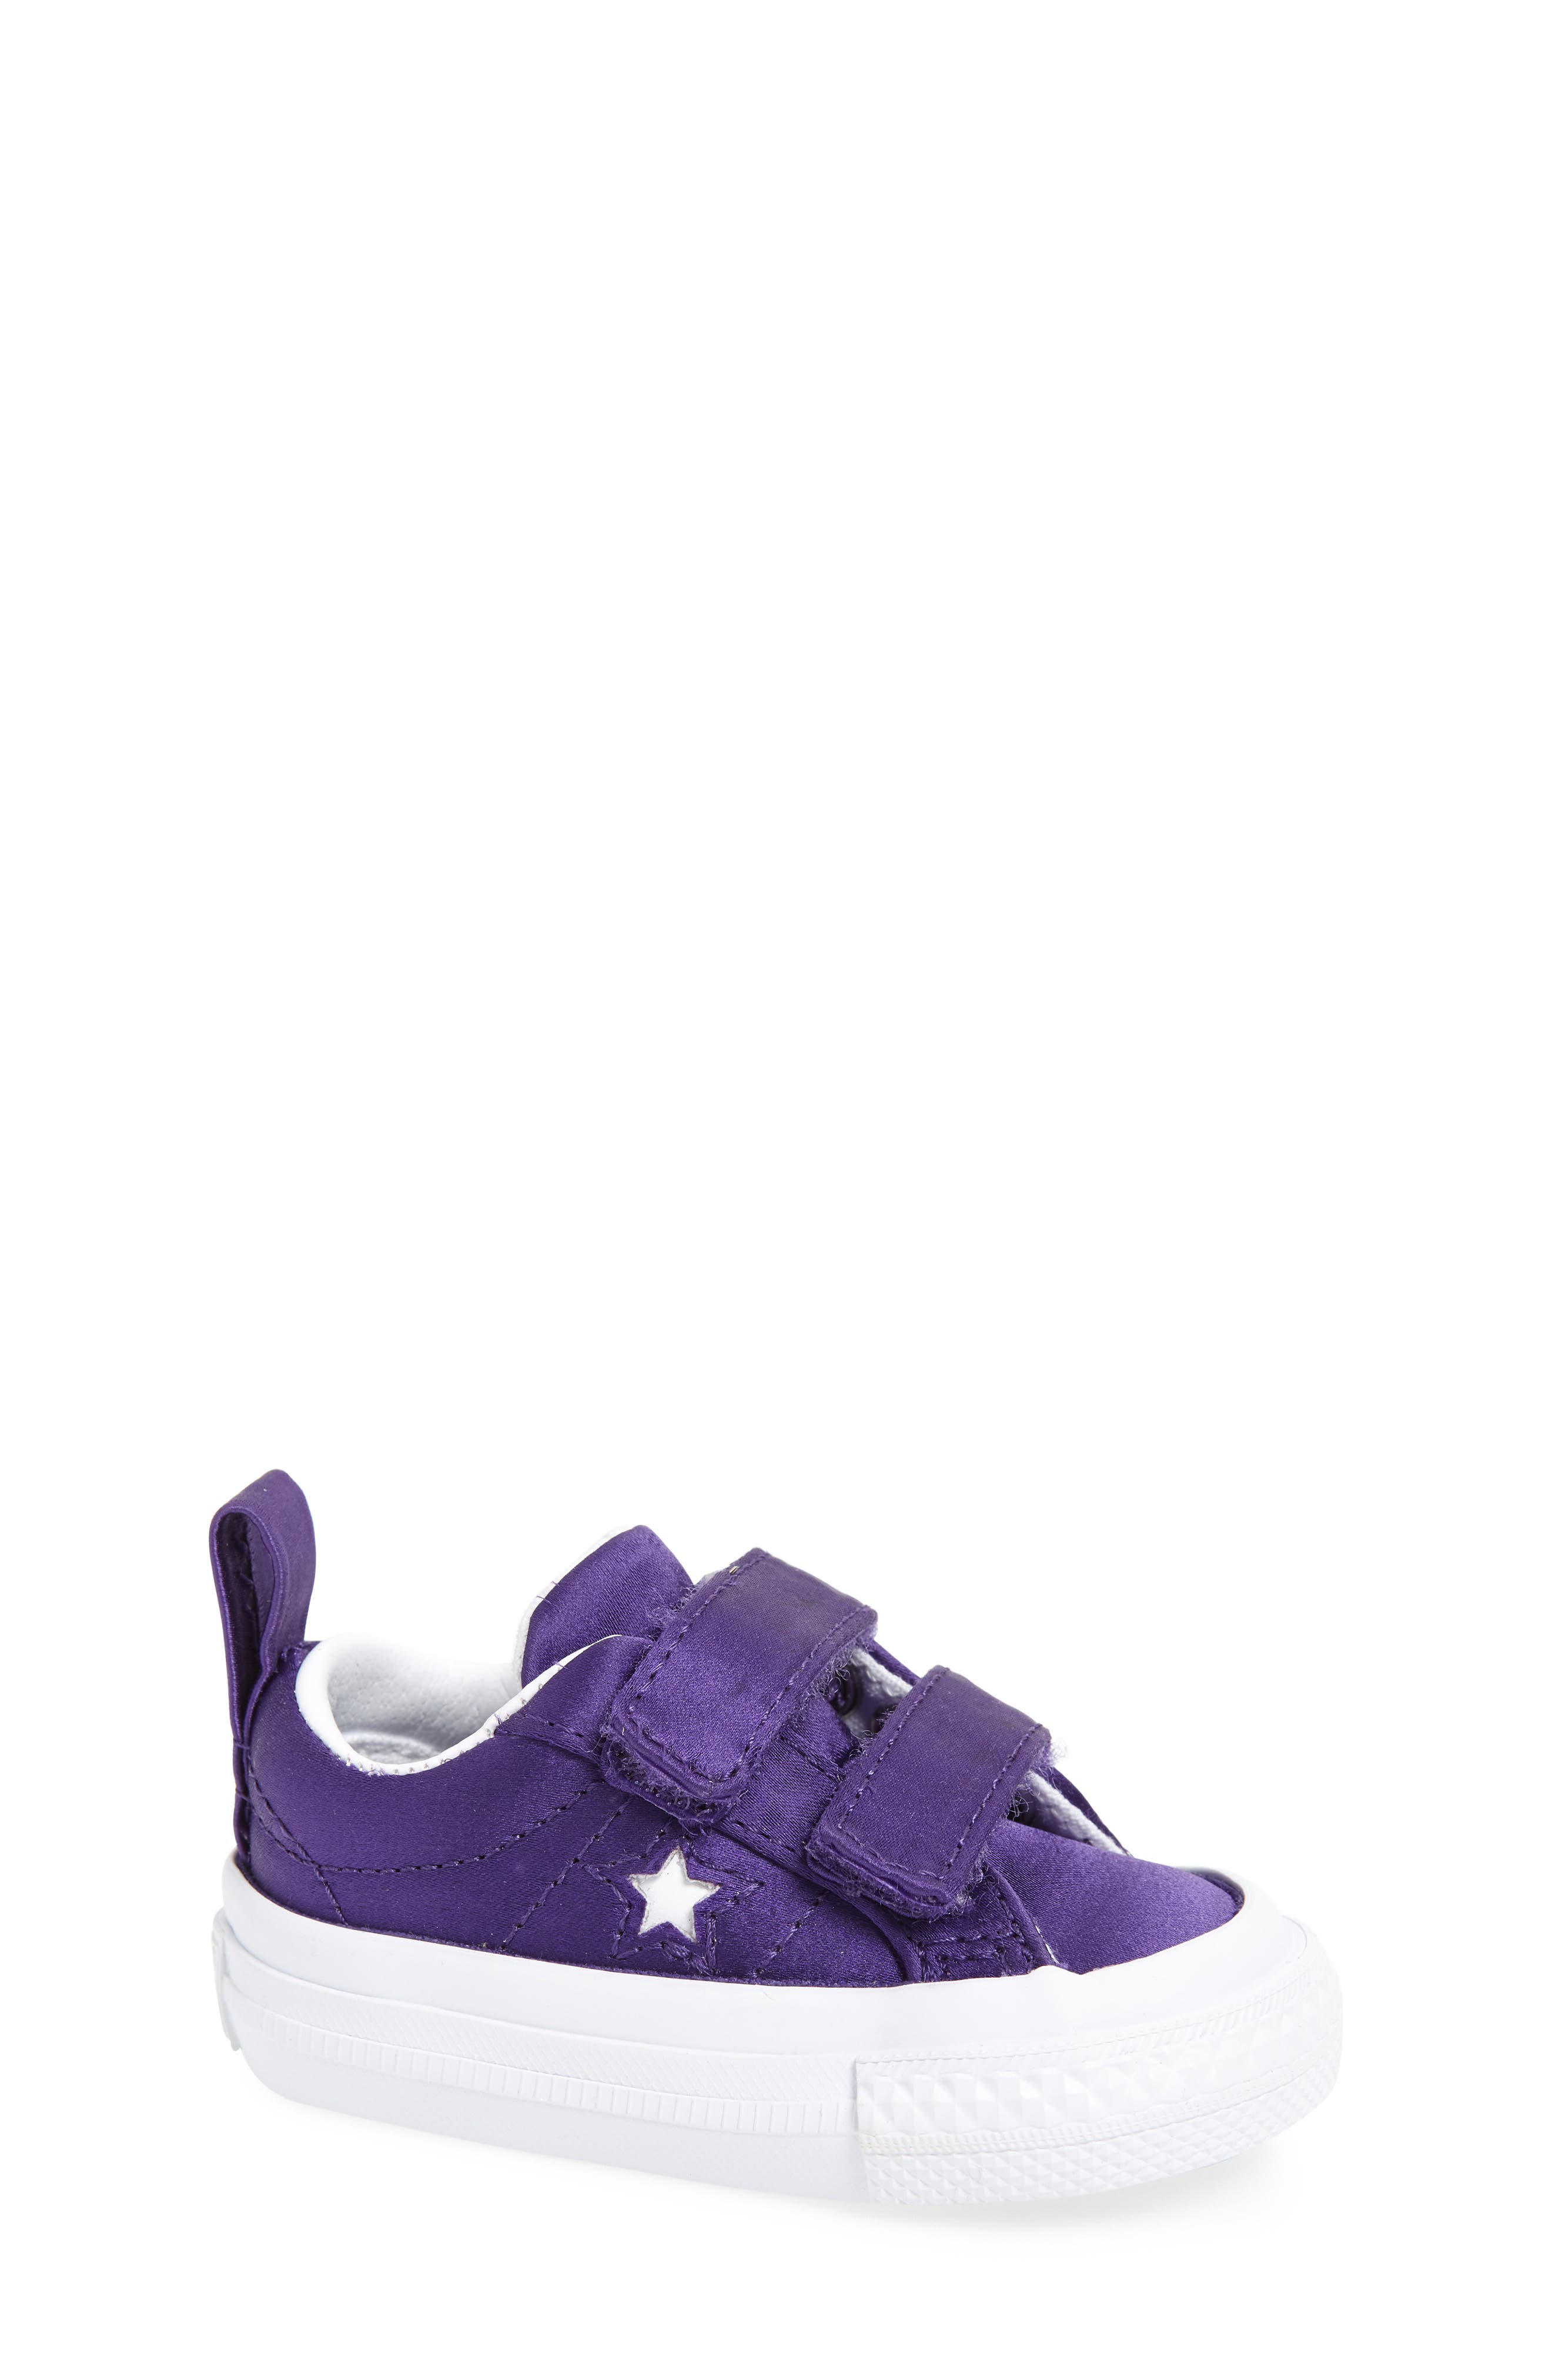 One Star Satin 2V Low Top Sneaker,                             Main thumbnail 1, color,                             Court Purple